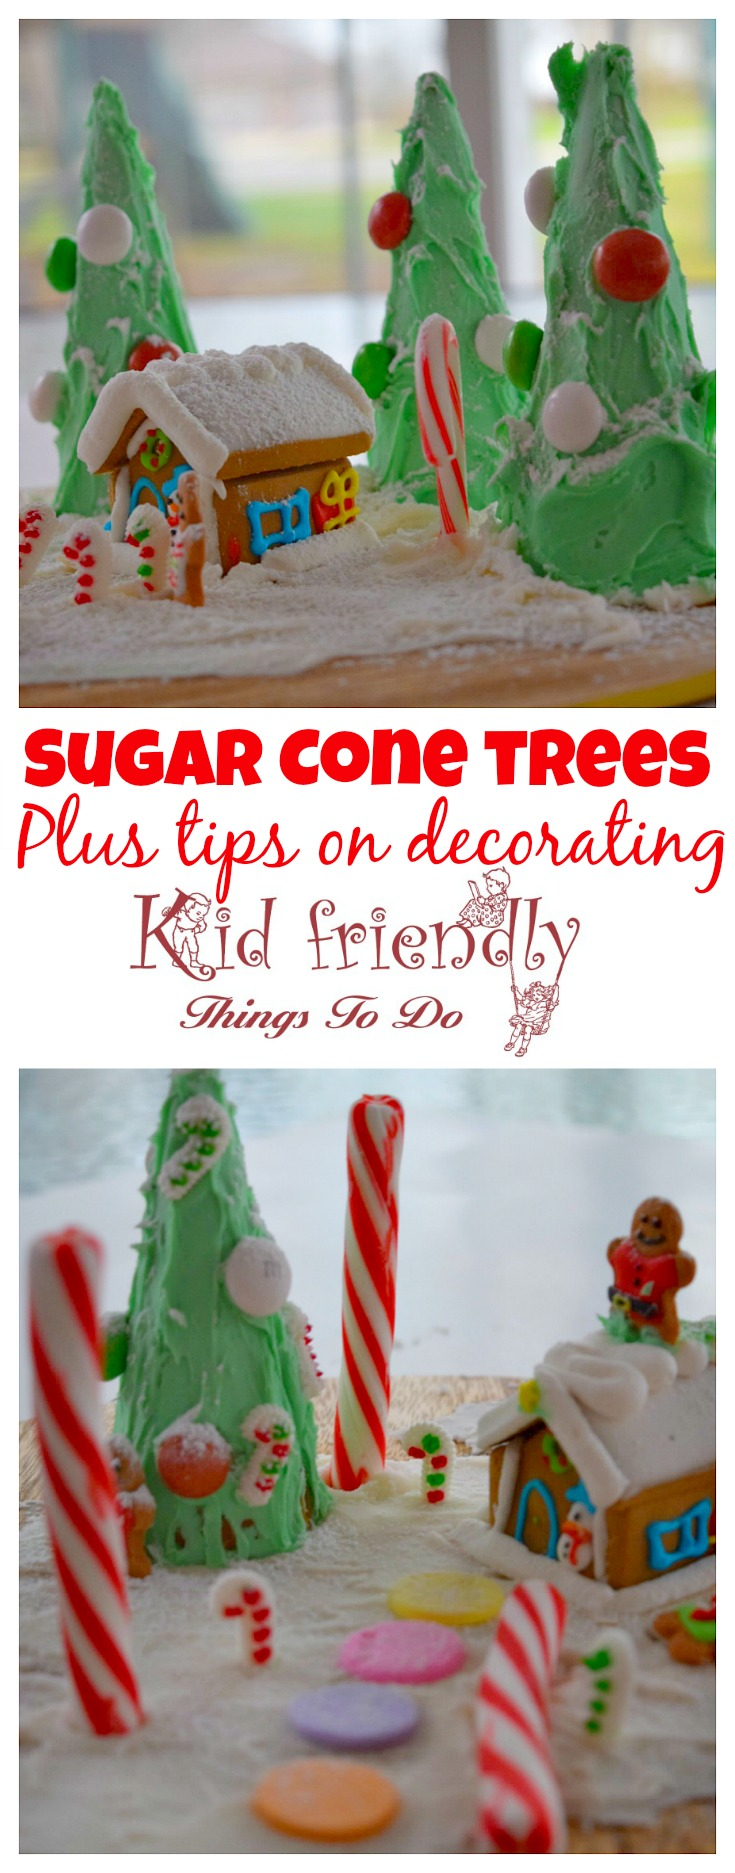 Sugar Cone easy Christmas trees for a fun and simple alternative to gingerbread houses with the kids for holiday parties! plus tips on decorating - www.kidfriendlythingstodo.com